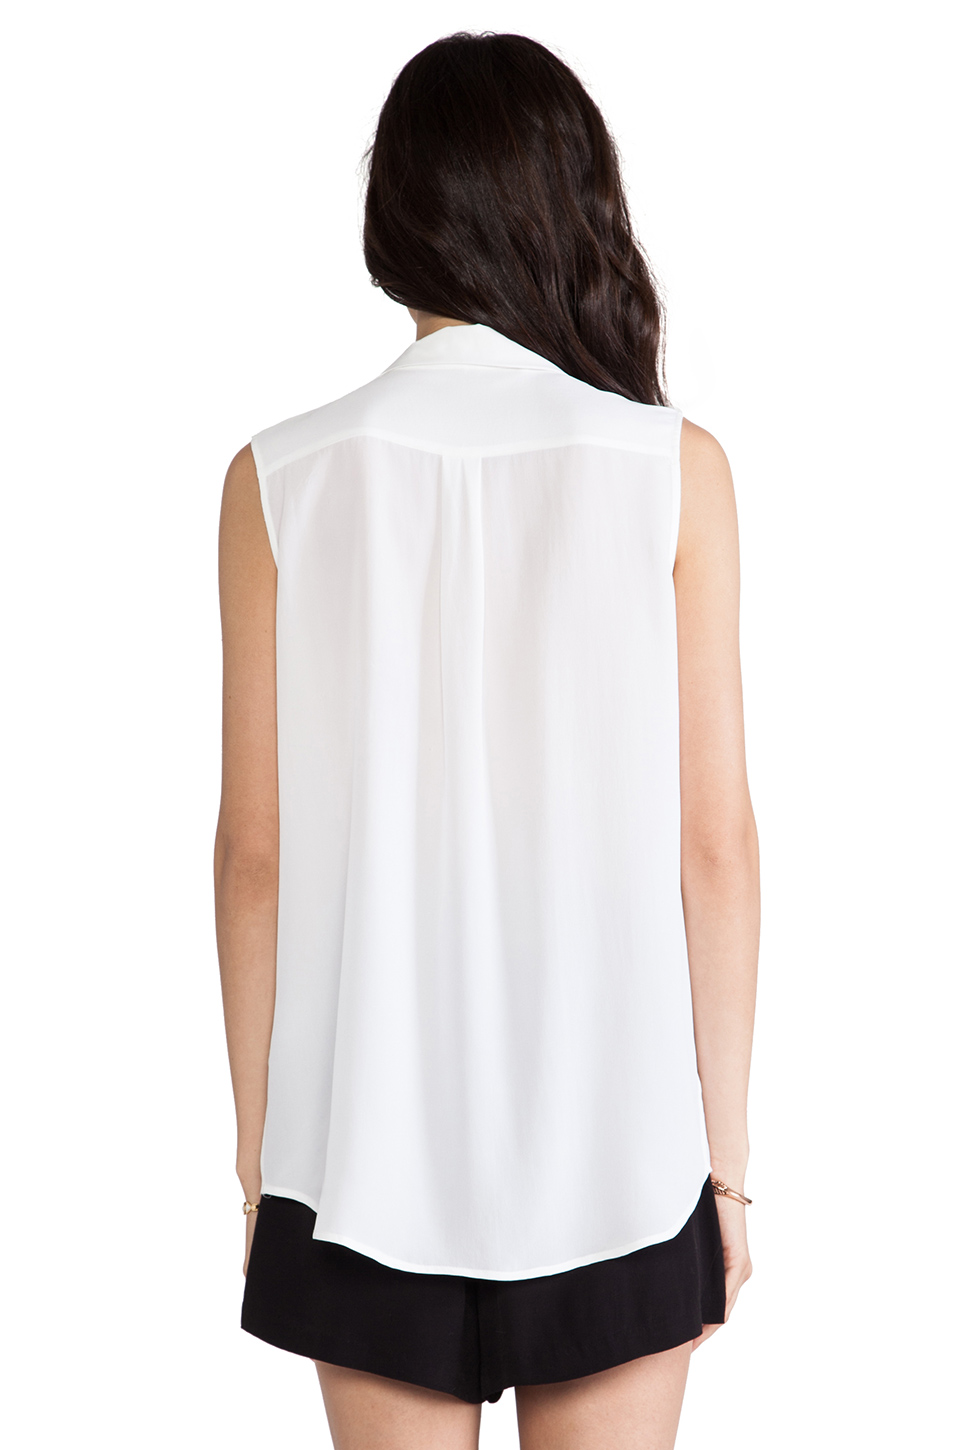 897dd6cdfc917 Equipment Sleeveless Keira Blouse in Bright White from ...